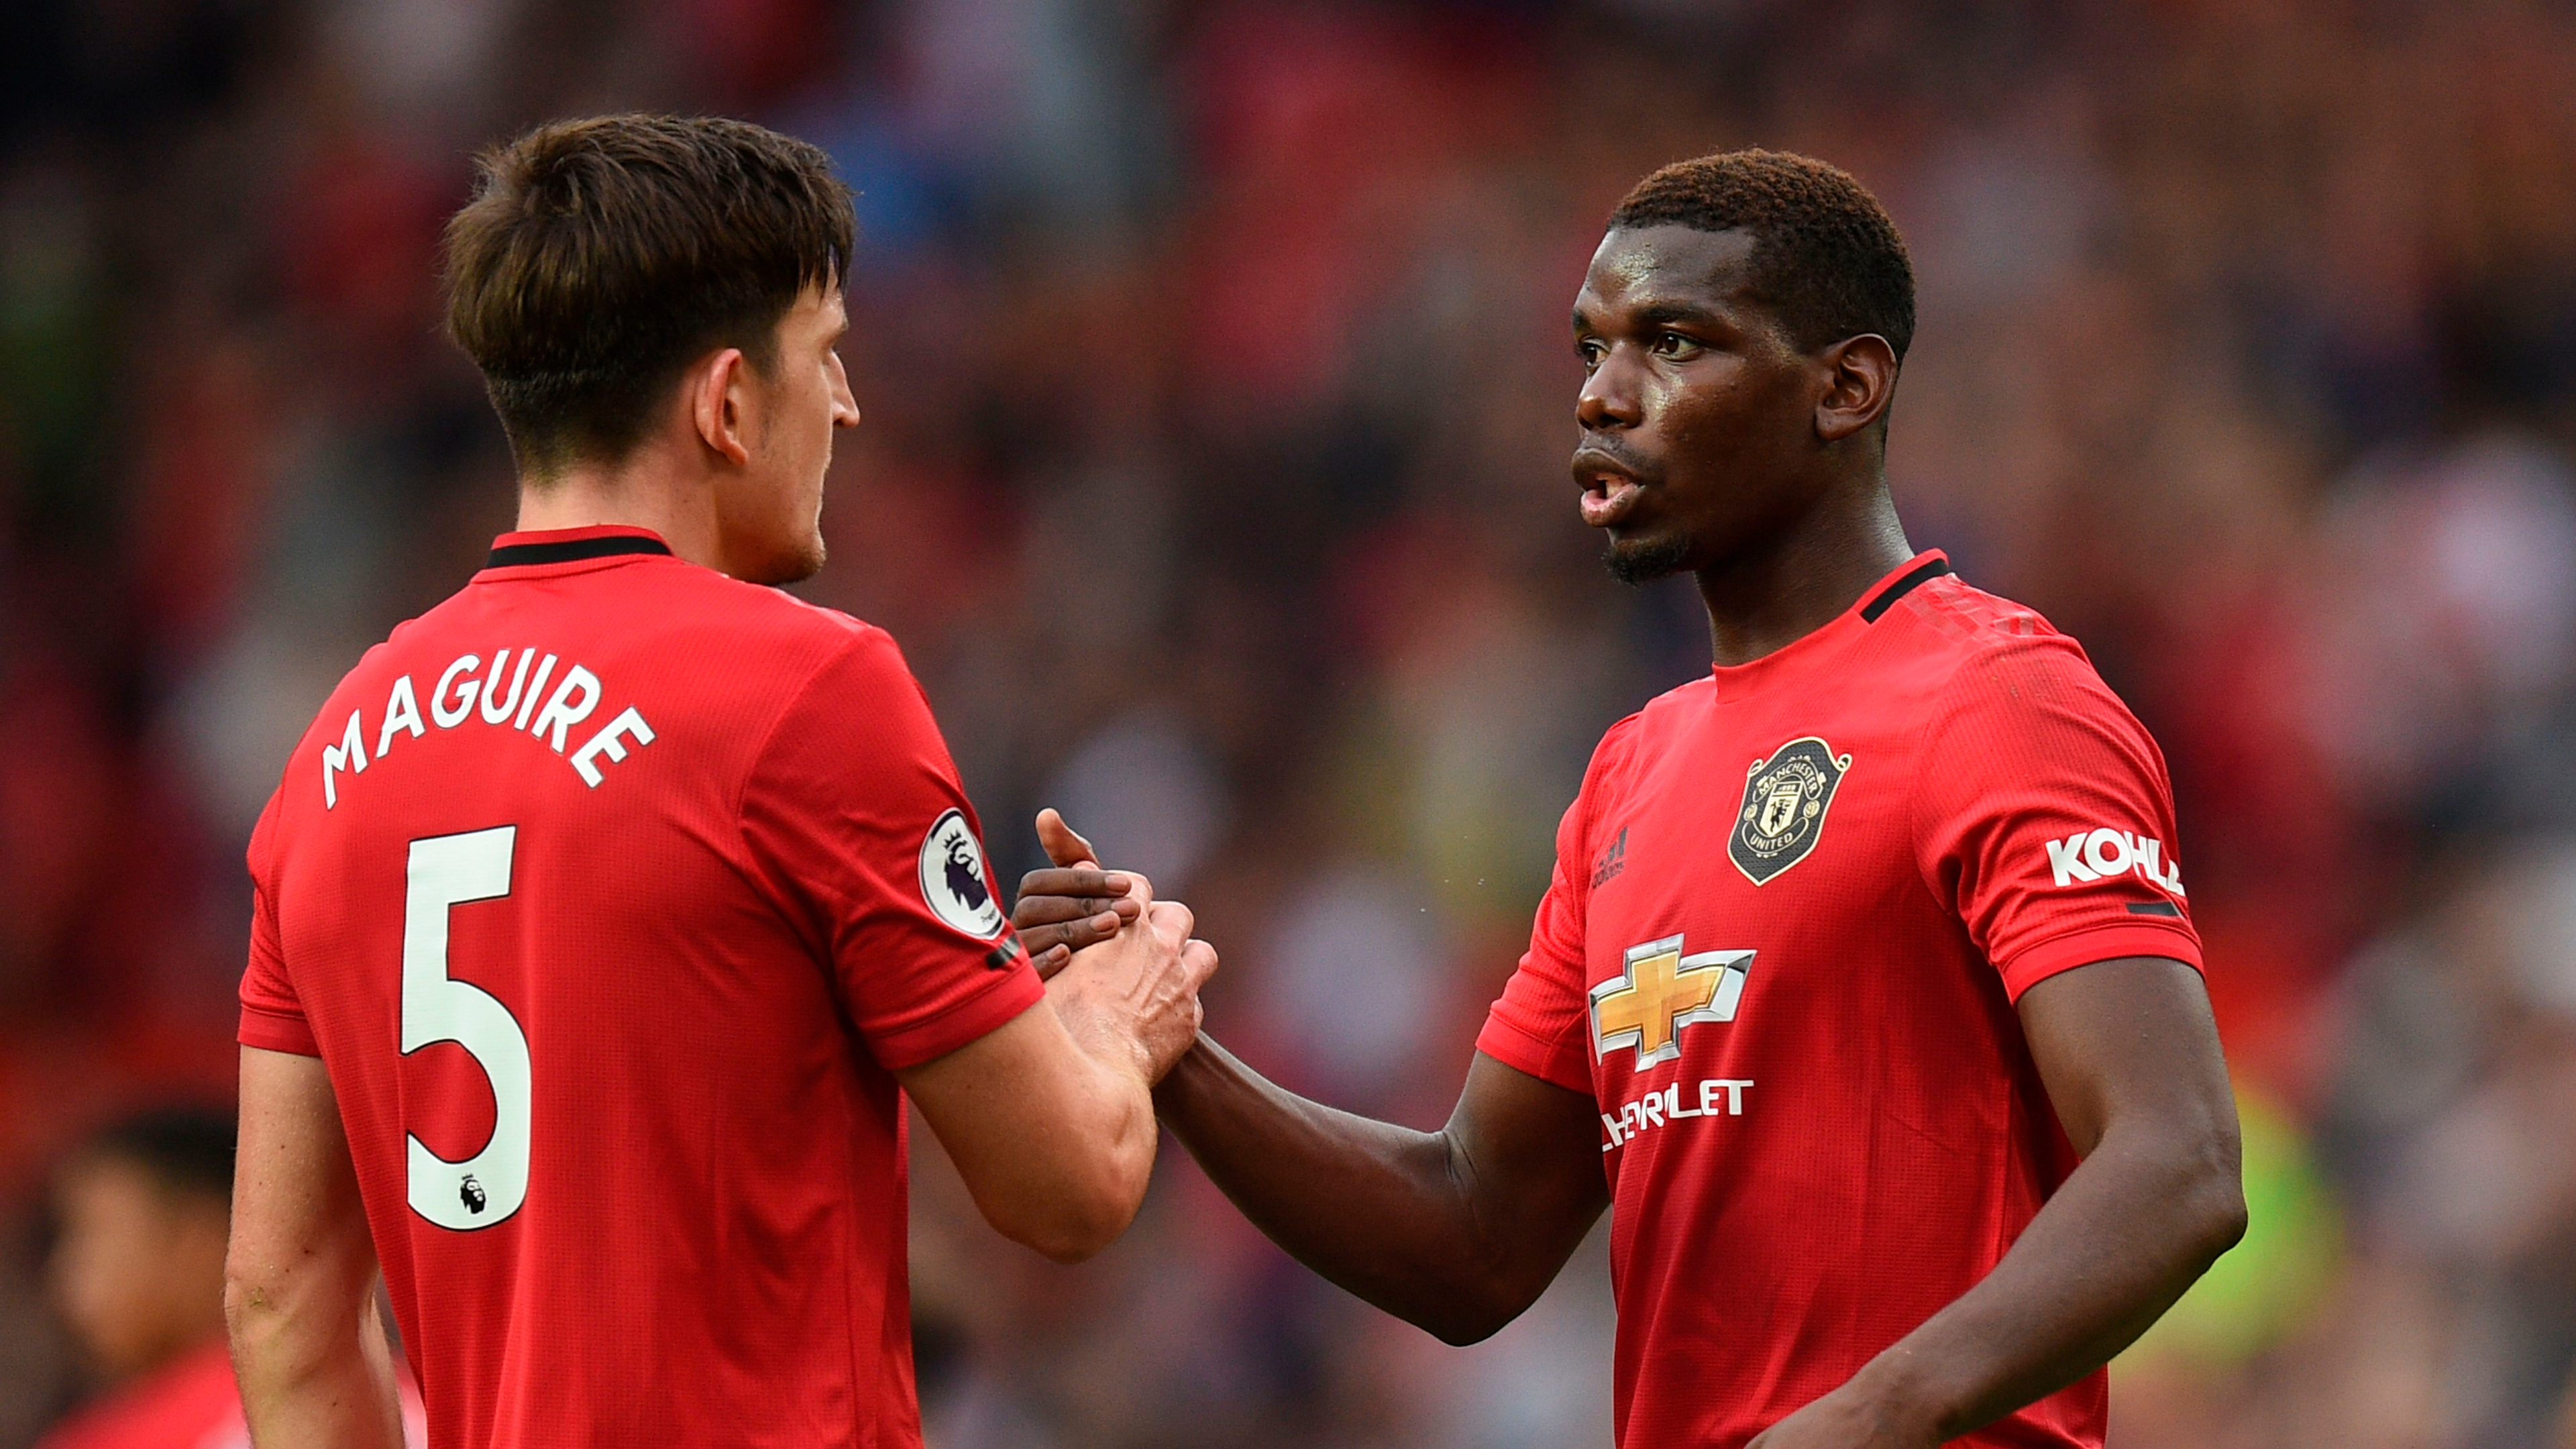 Pogba's brother warns Man United, fuels Real Madrid transfer speculation